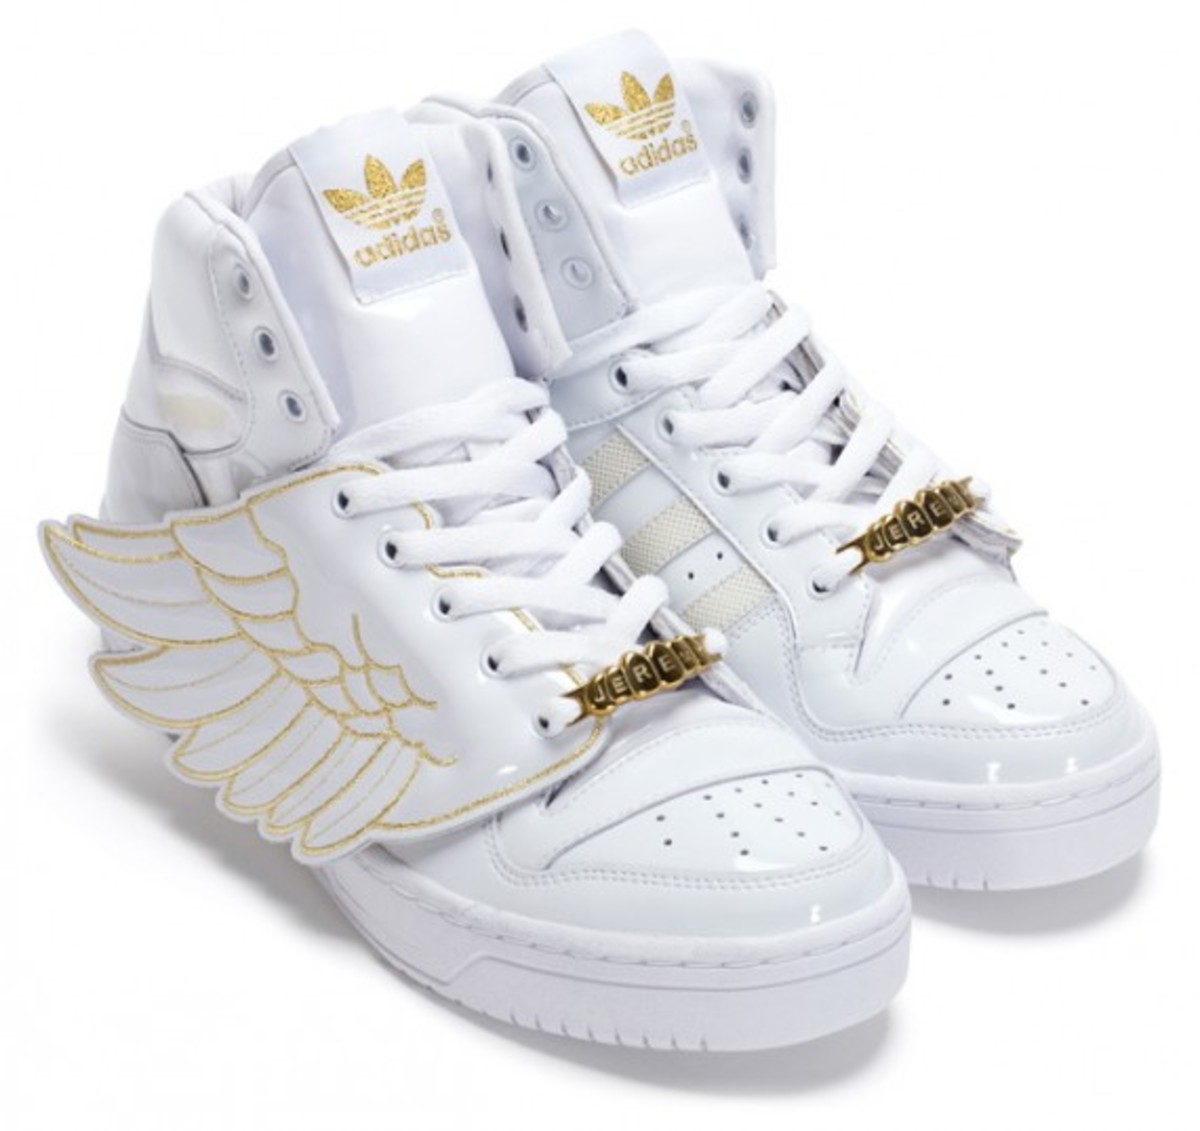 jeremy_scott_adidas_originals_obyo_ss10_footwear_4